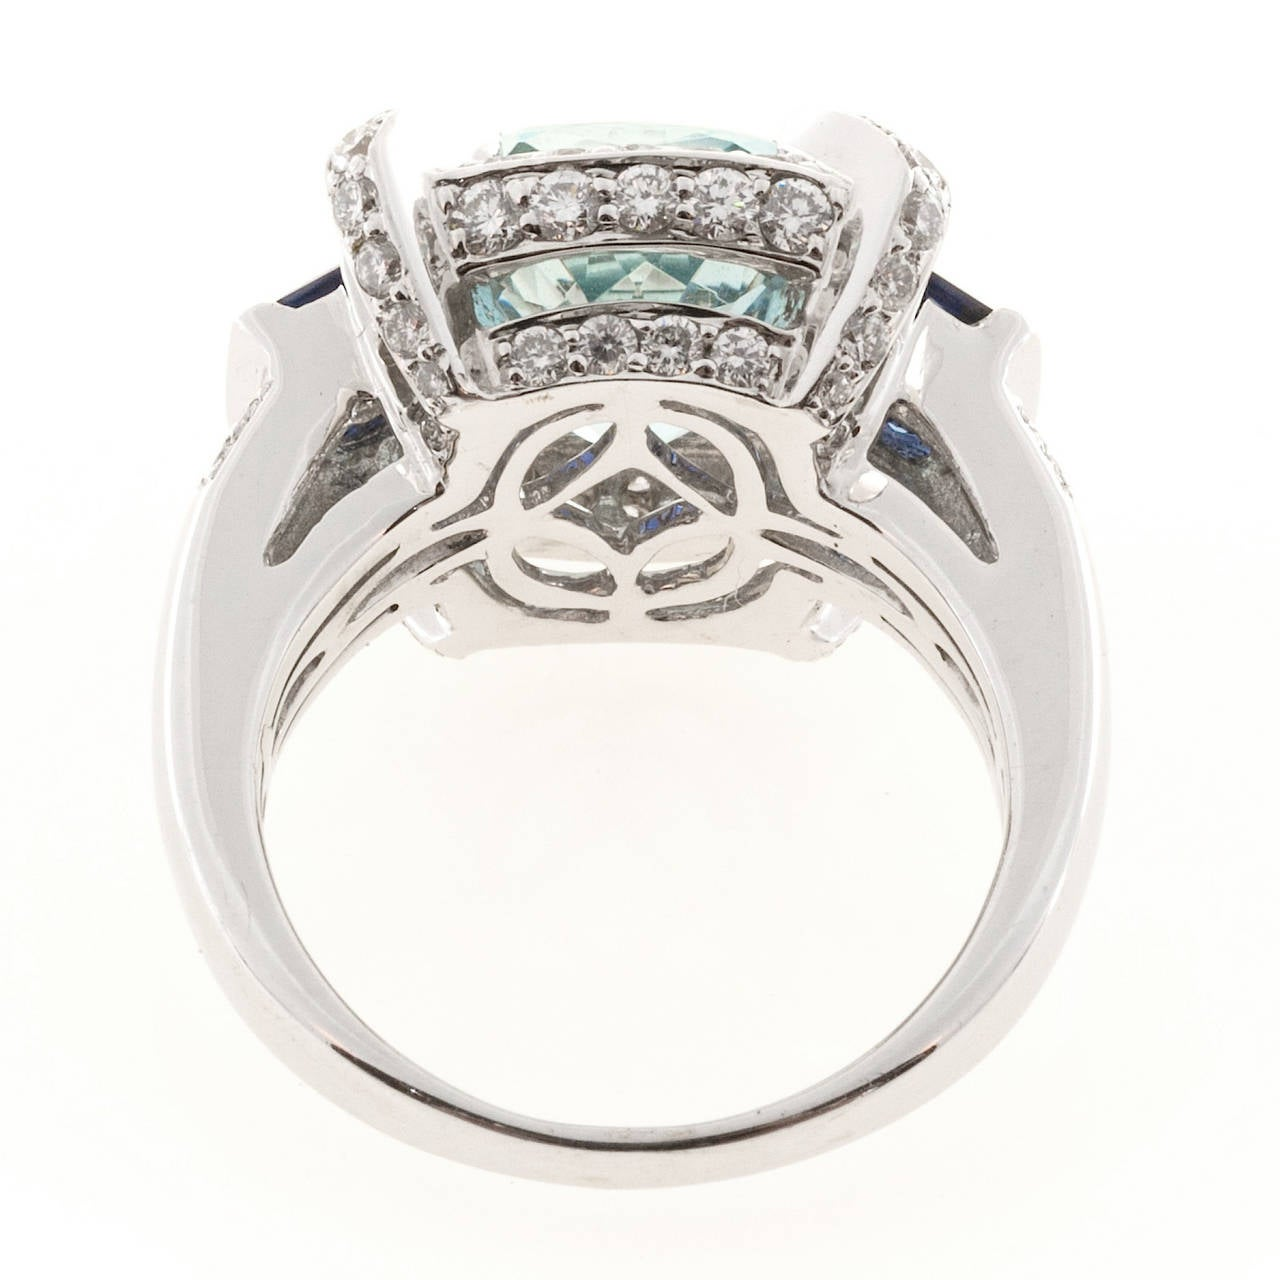 Charles Krypell Aquamarine Sapphire Diamond Gold Cocktail Ring For Sale 2